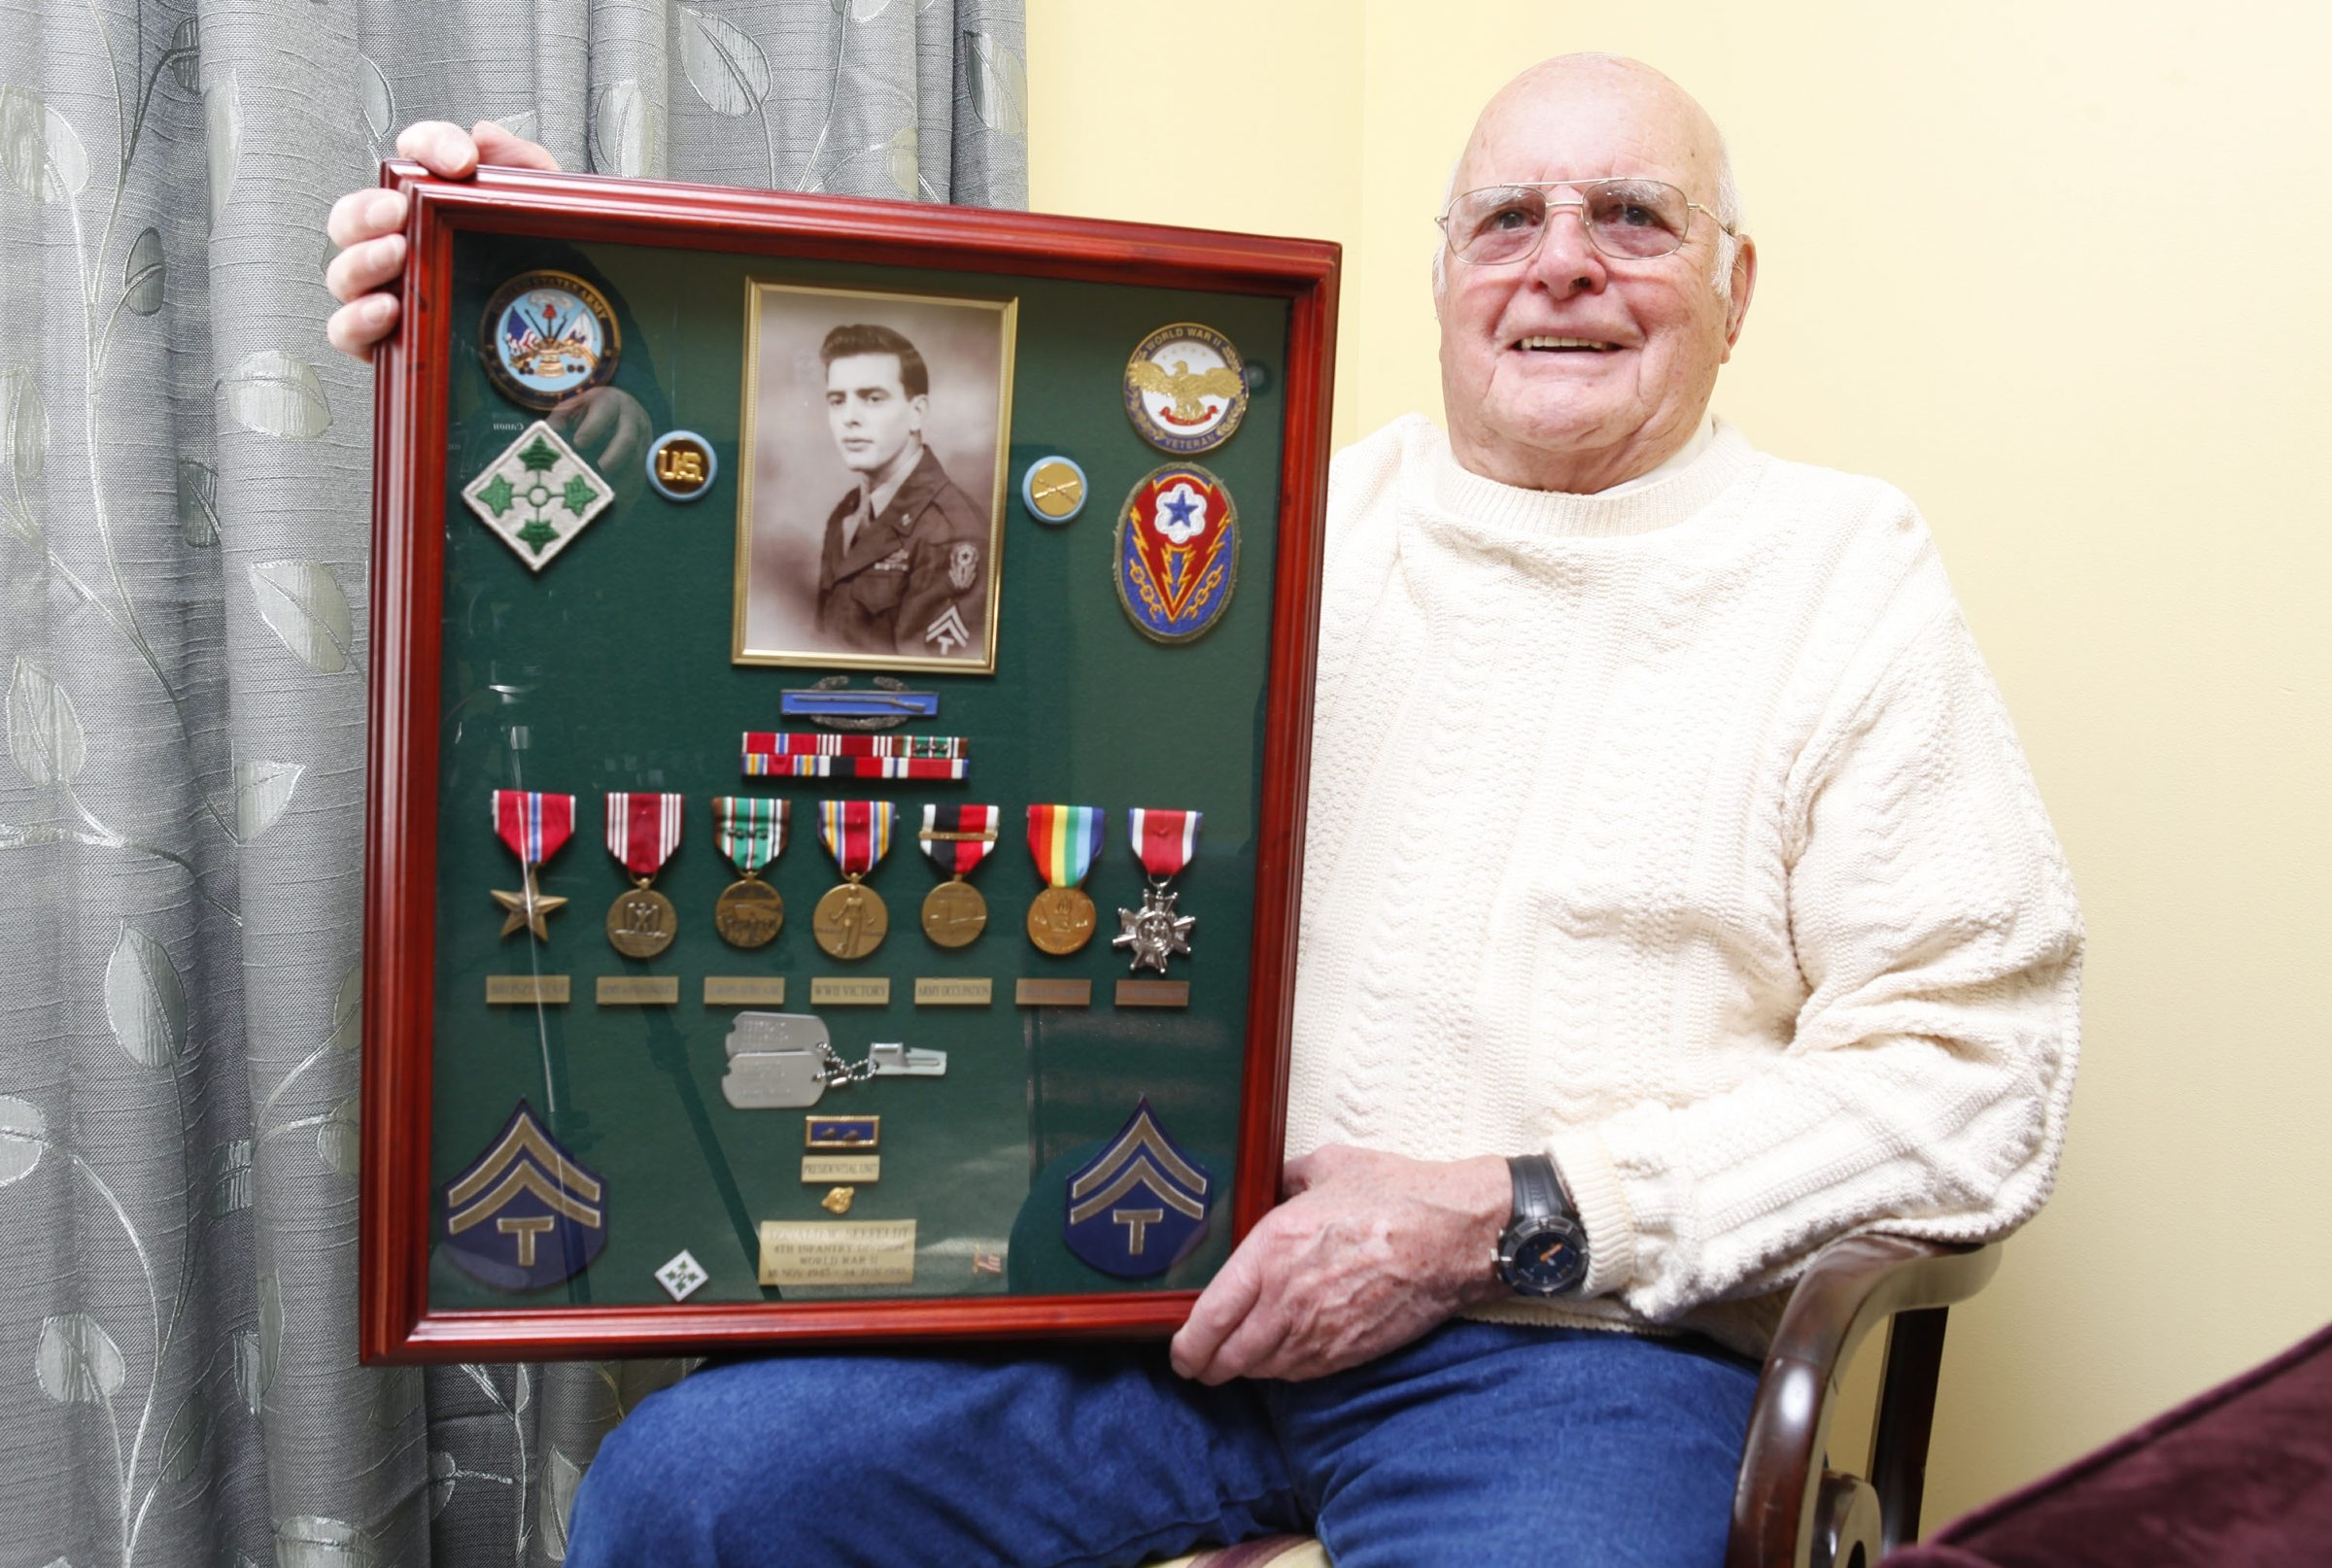 Medals and insignia from war in Europe evoke memories for Donald Seefeldt, whose battlefield trauma sent him to the hospital for 1½ months.